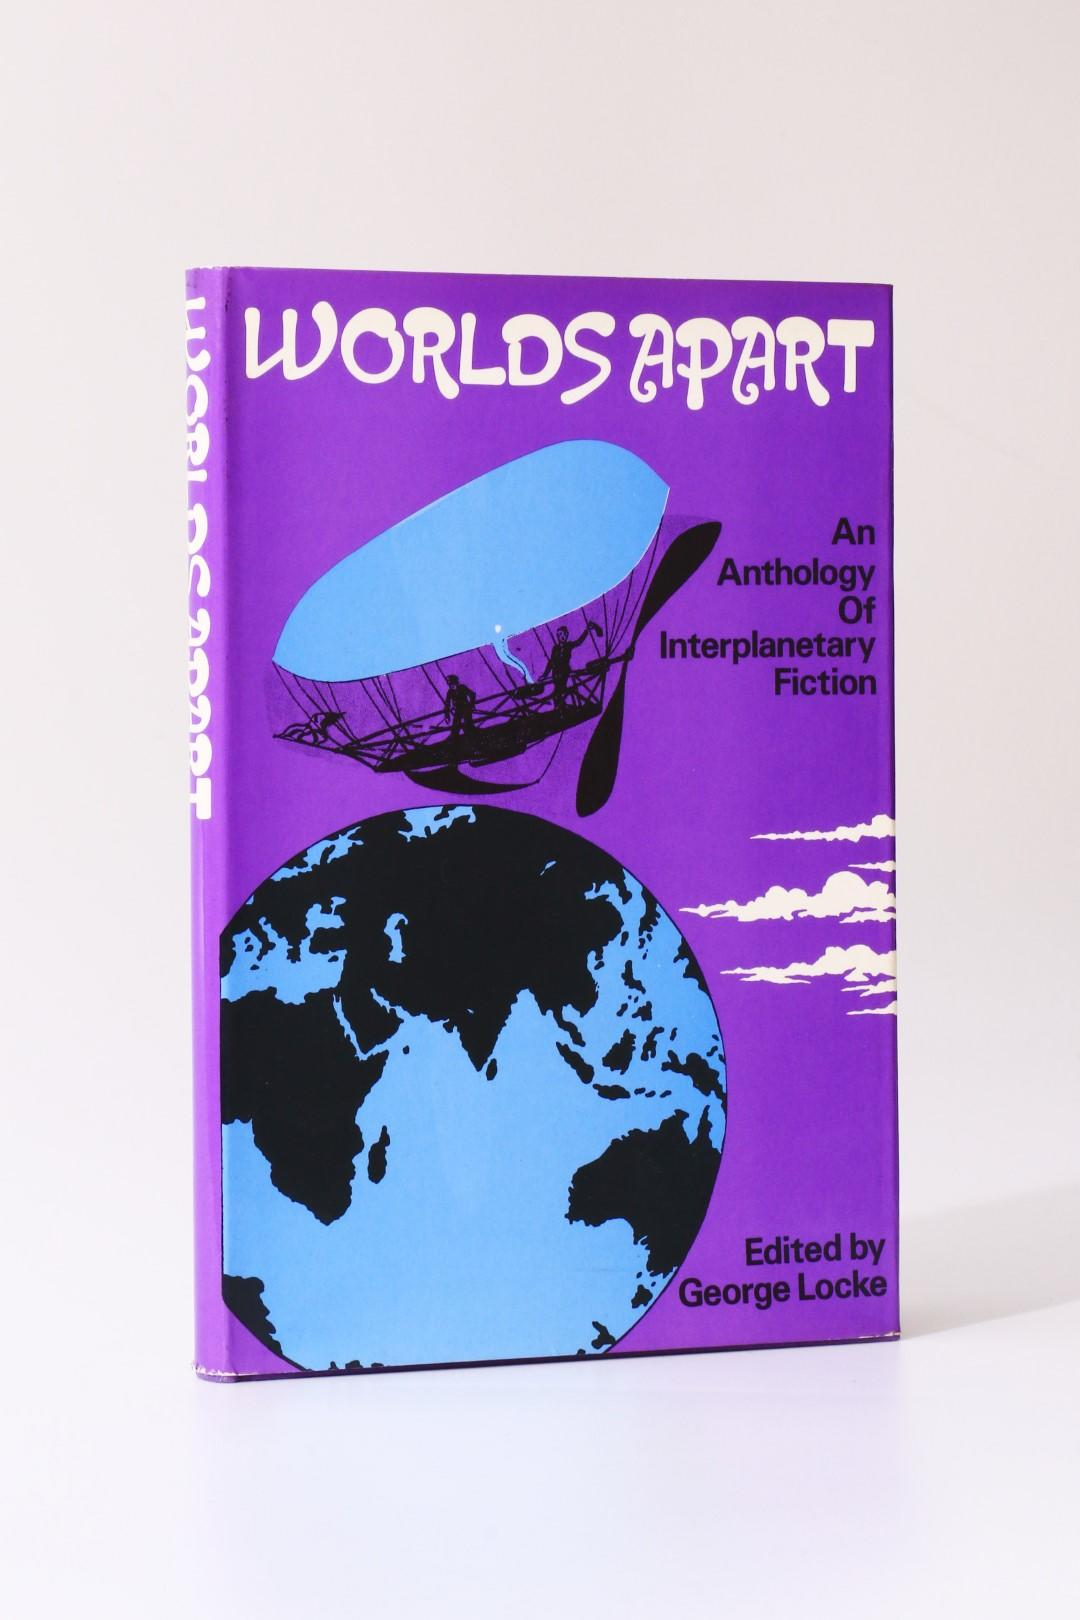 George Locke [ed.] - Worlds Apart - Cornmarket Reprints, 1972, First Edition.